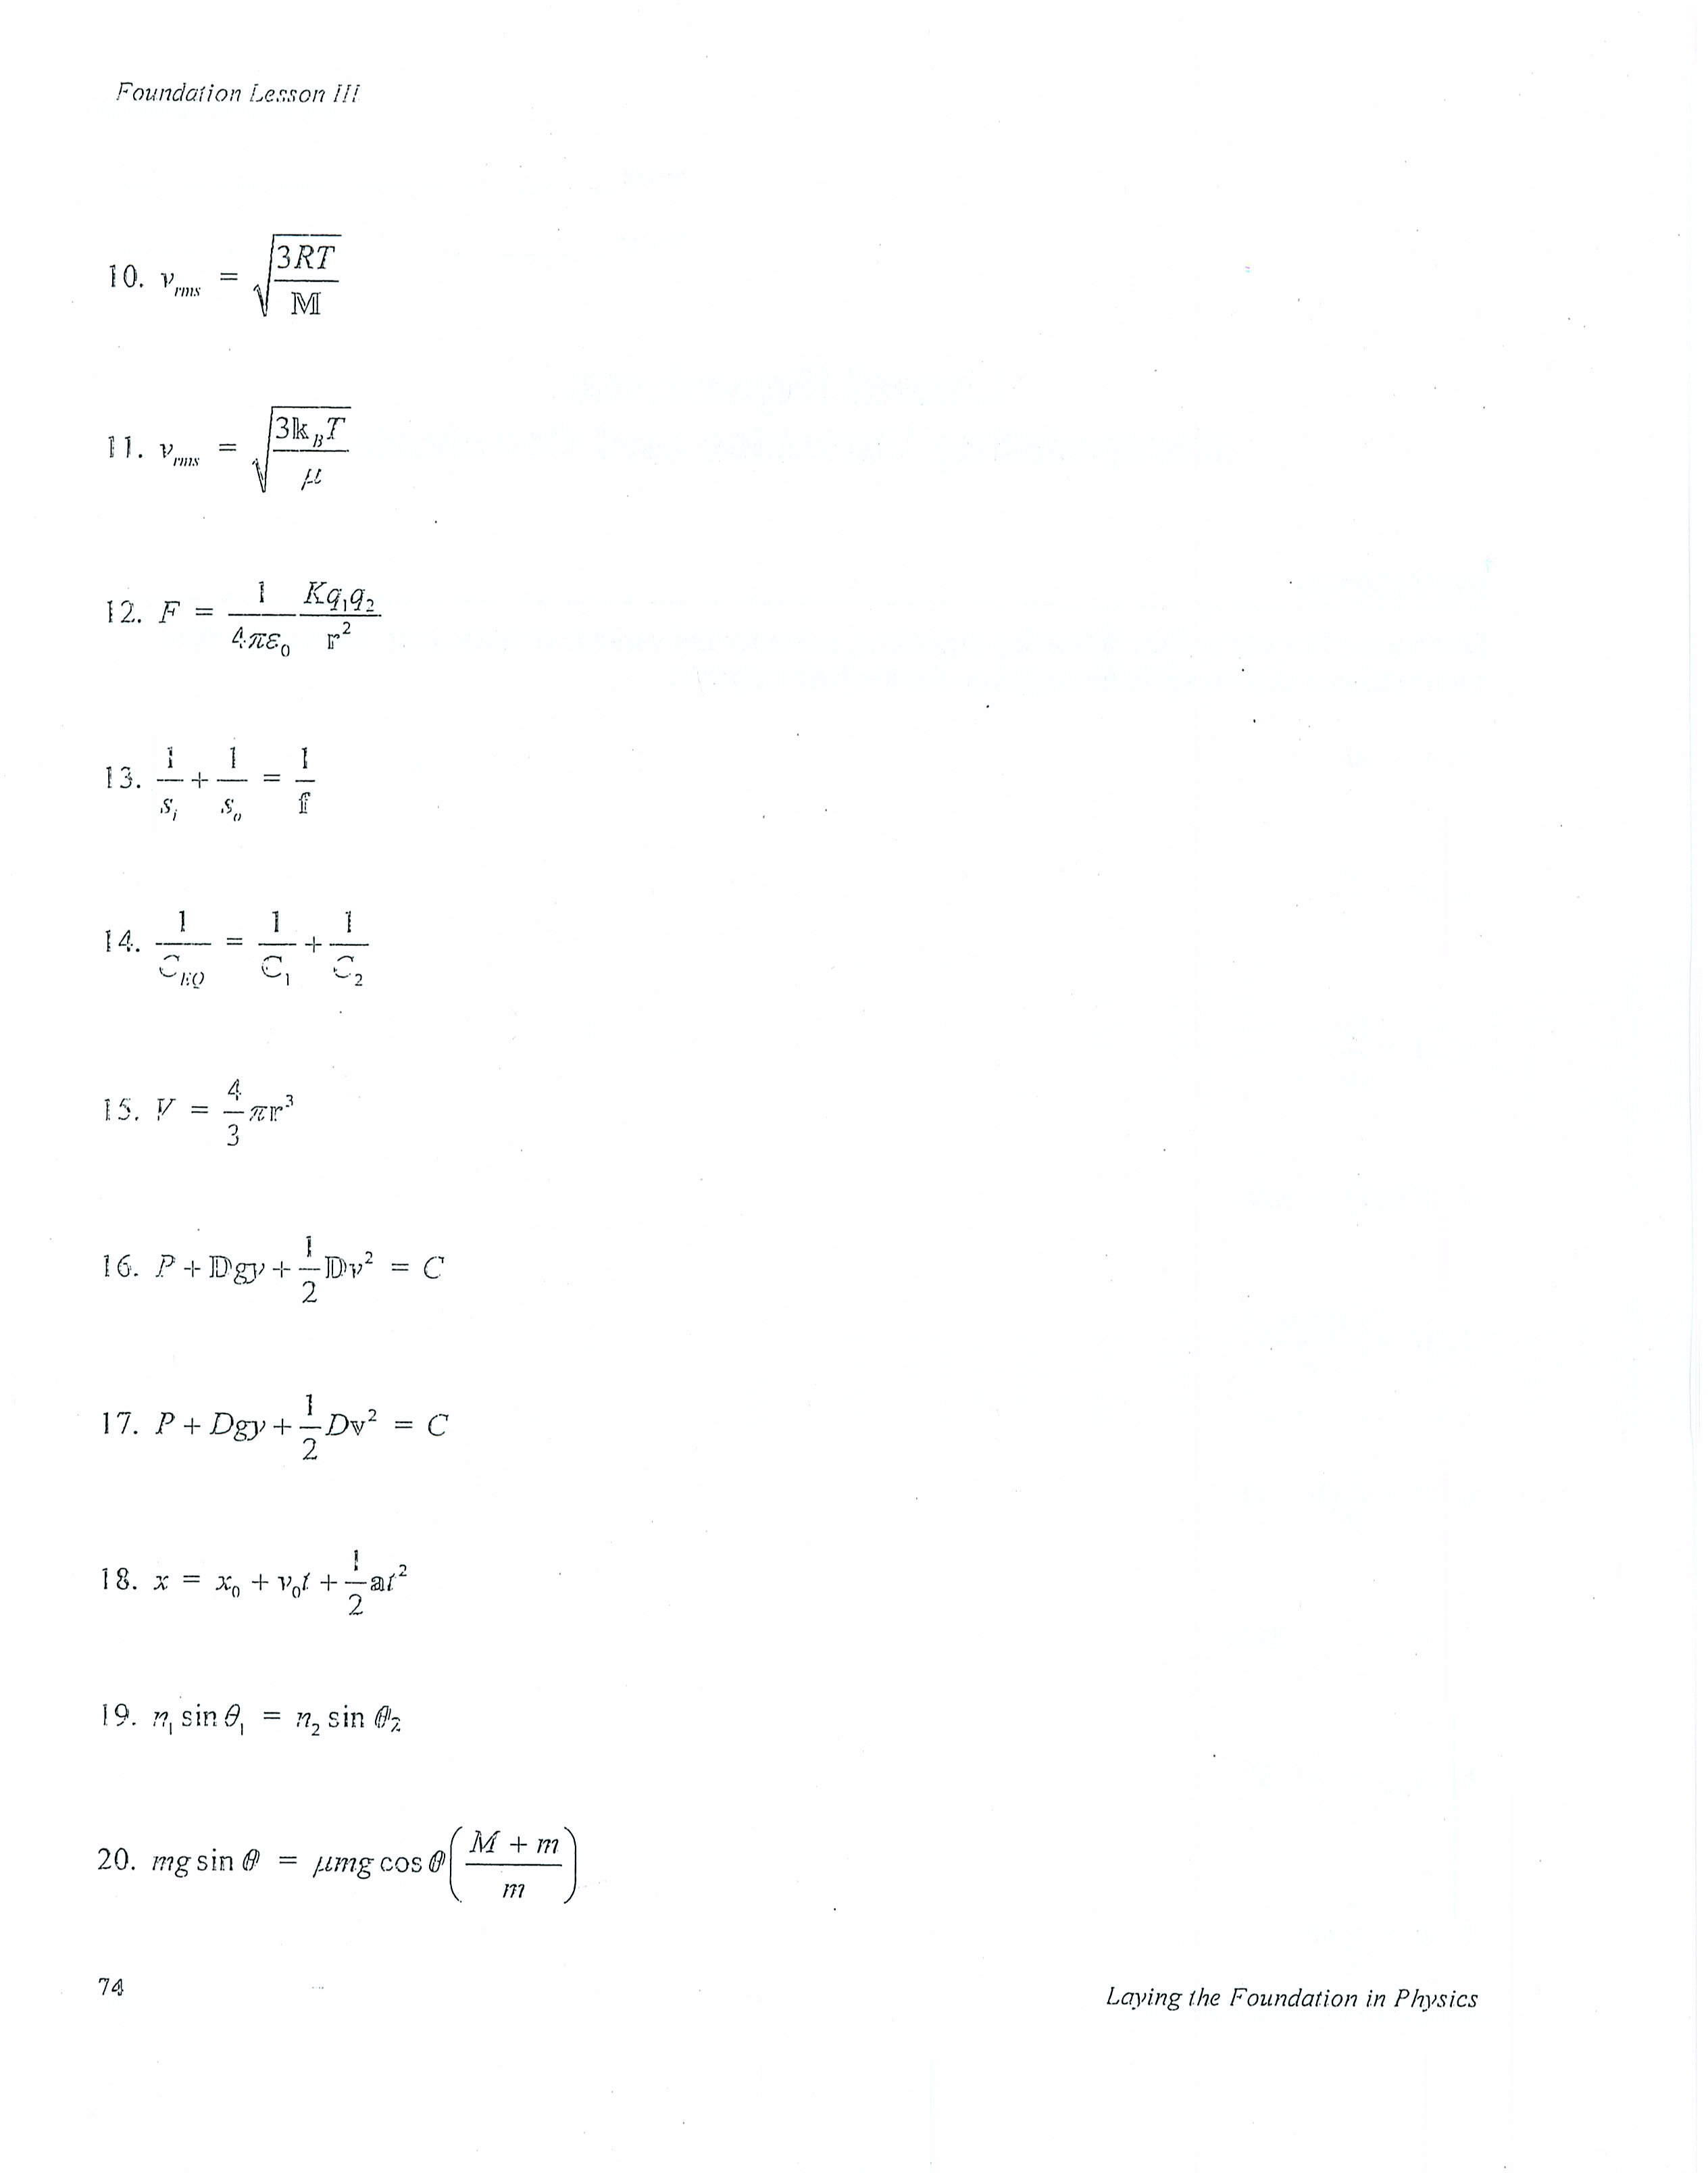 Free Worksheet Literal Equations Worksheets literal equation worksheets vintagegrn equations worksheet solve for the indicated physics fall 2011 ms fox lent